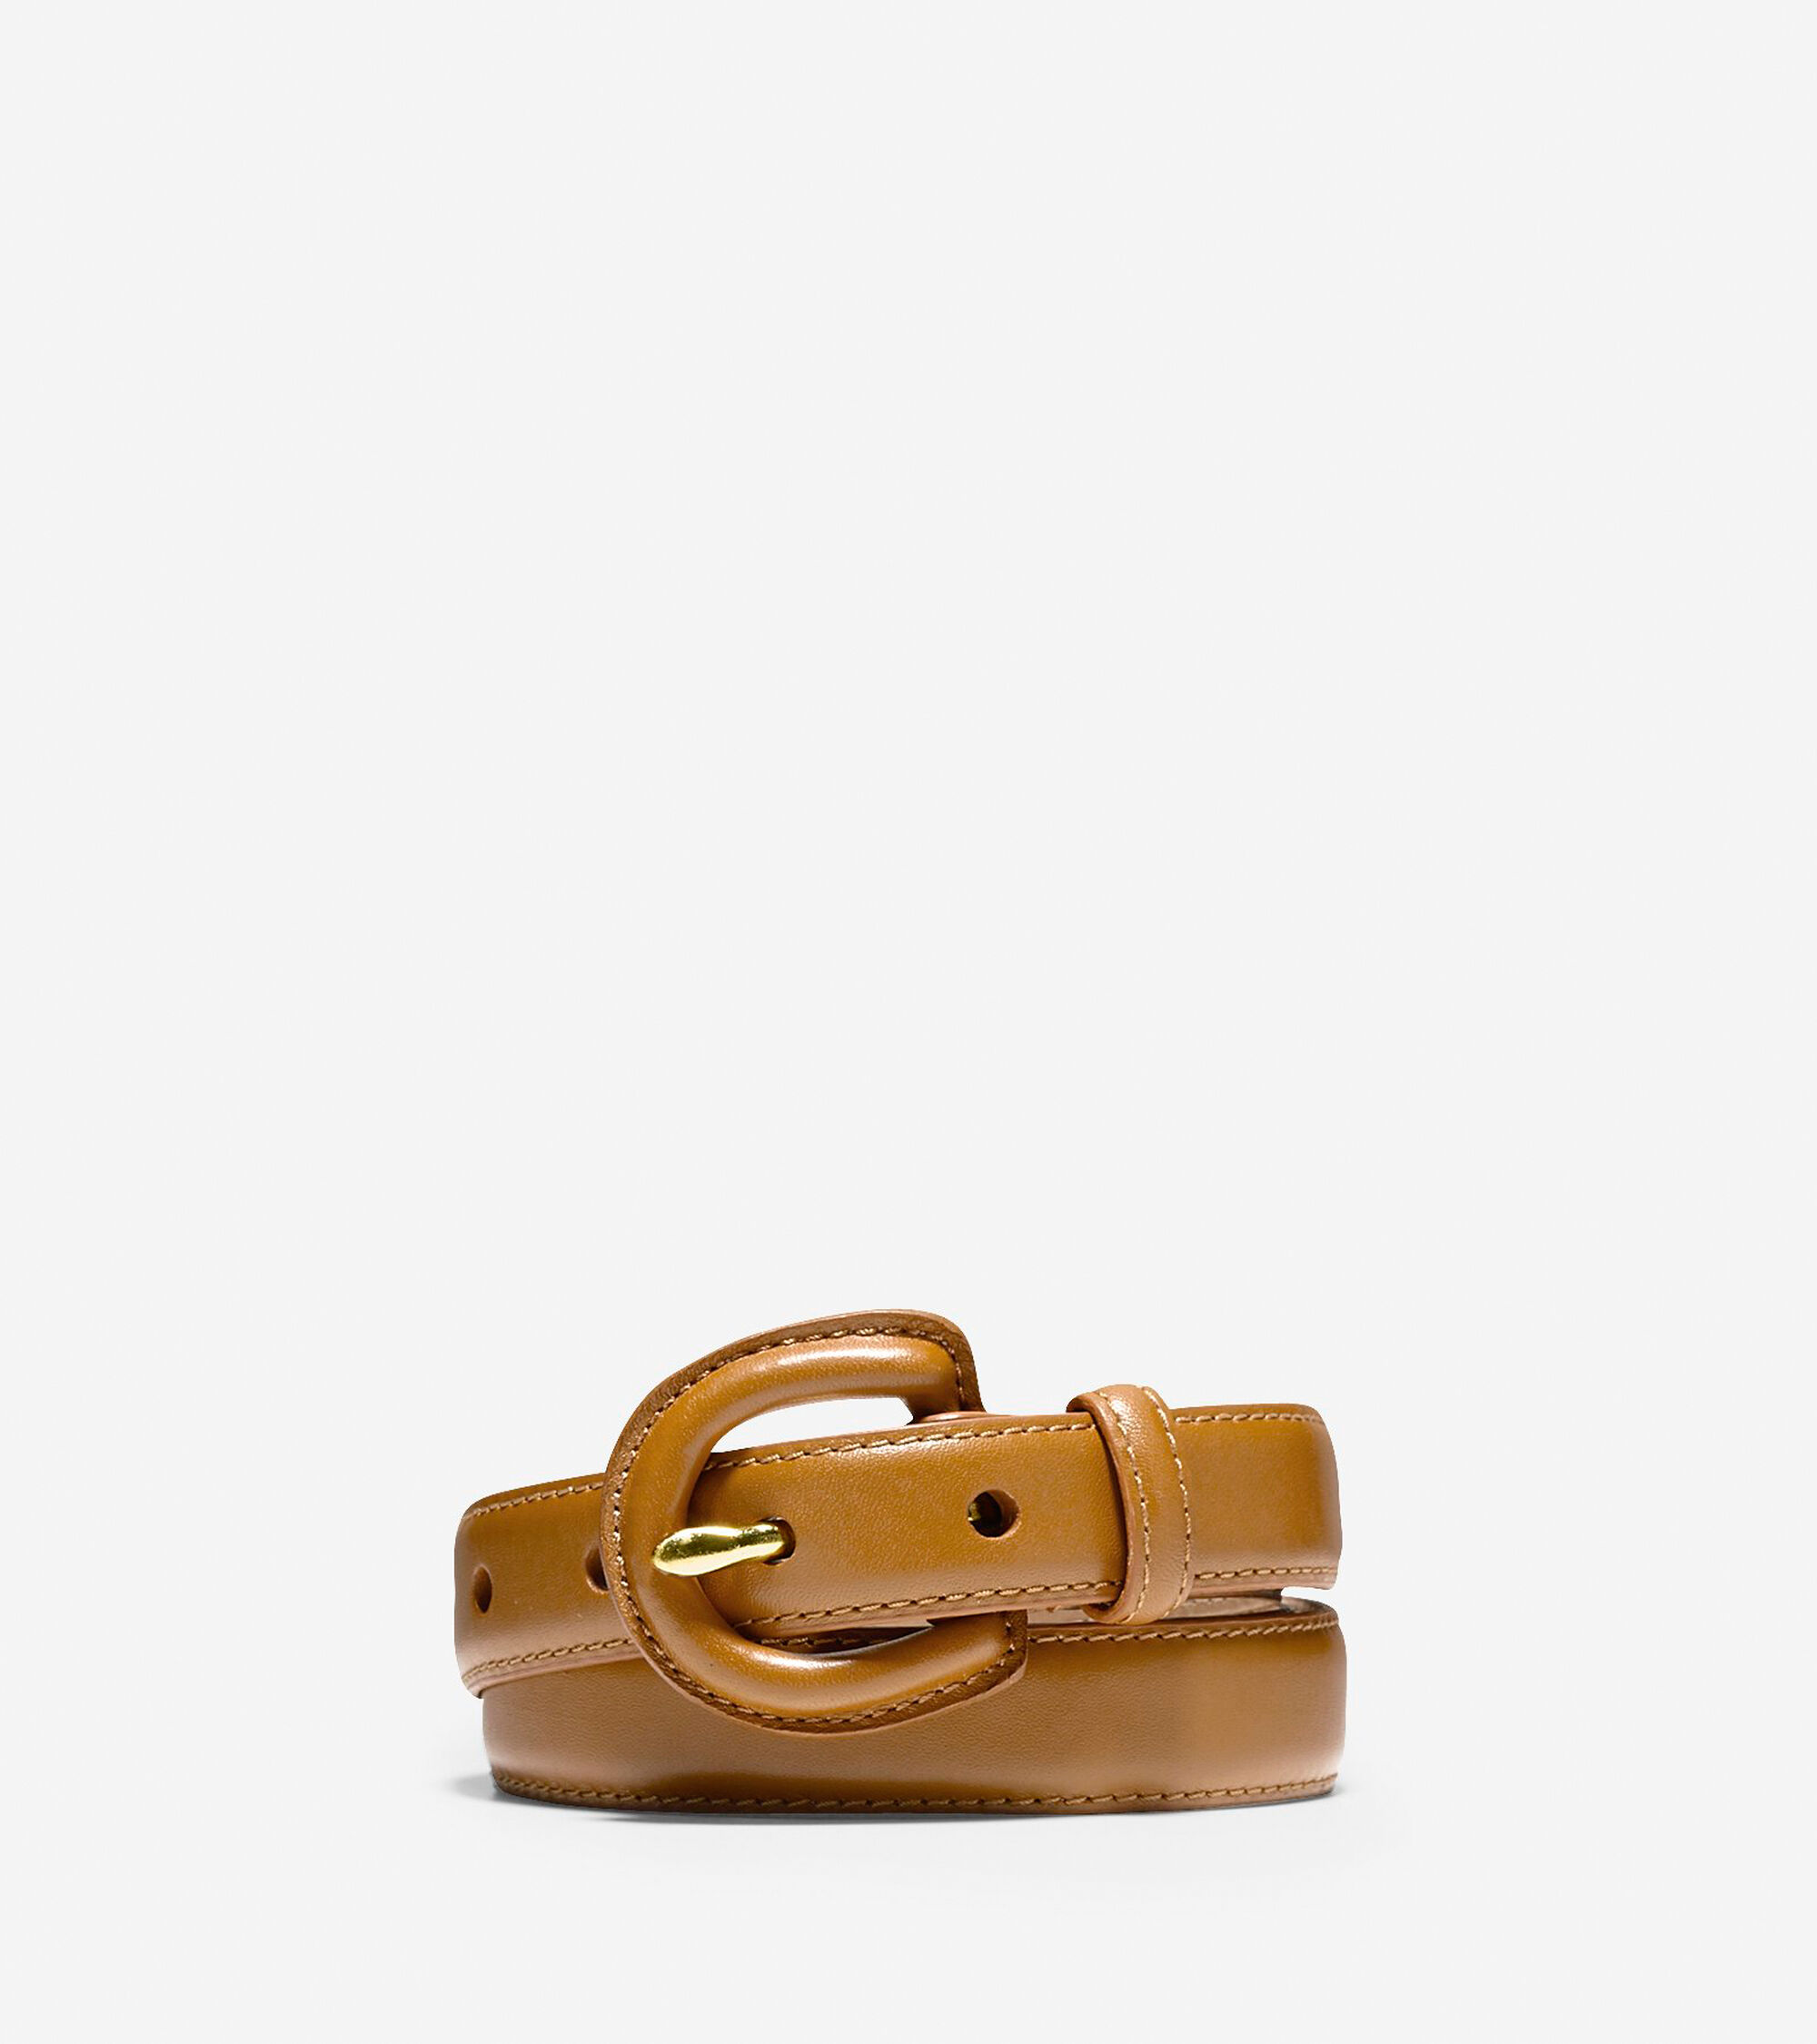 Accessories > Feather Edge Leather Belt